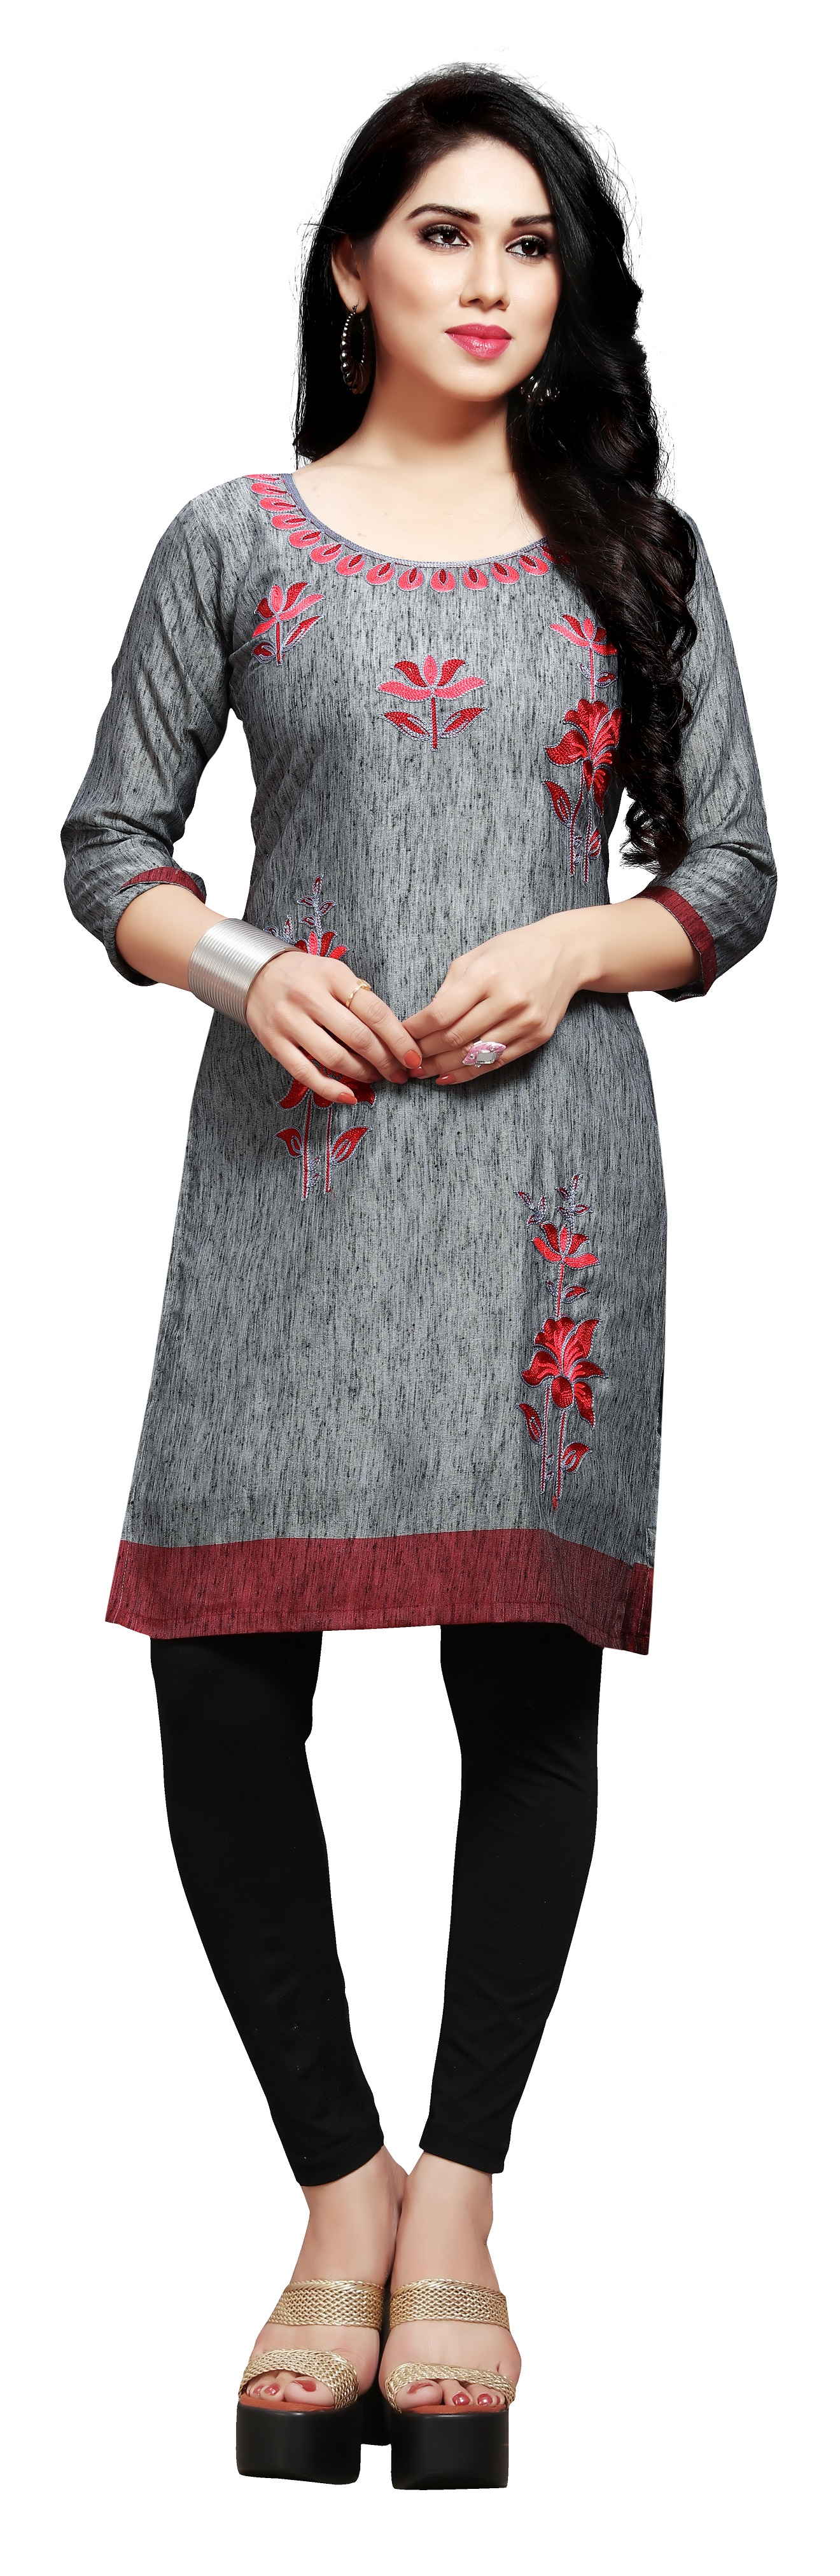 Venisa Wonderful Party Wear Pure Linen Grey Color Floral Embroidered Designer Kurtis For Women